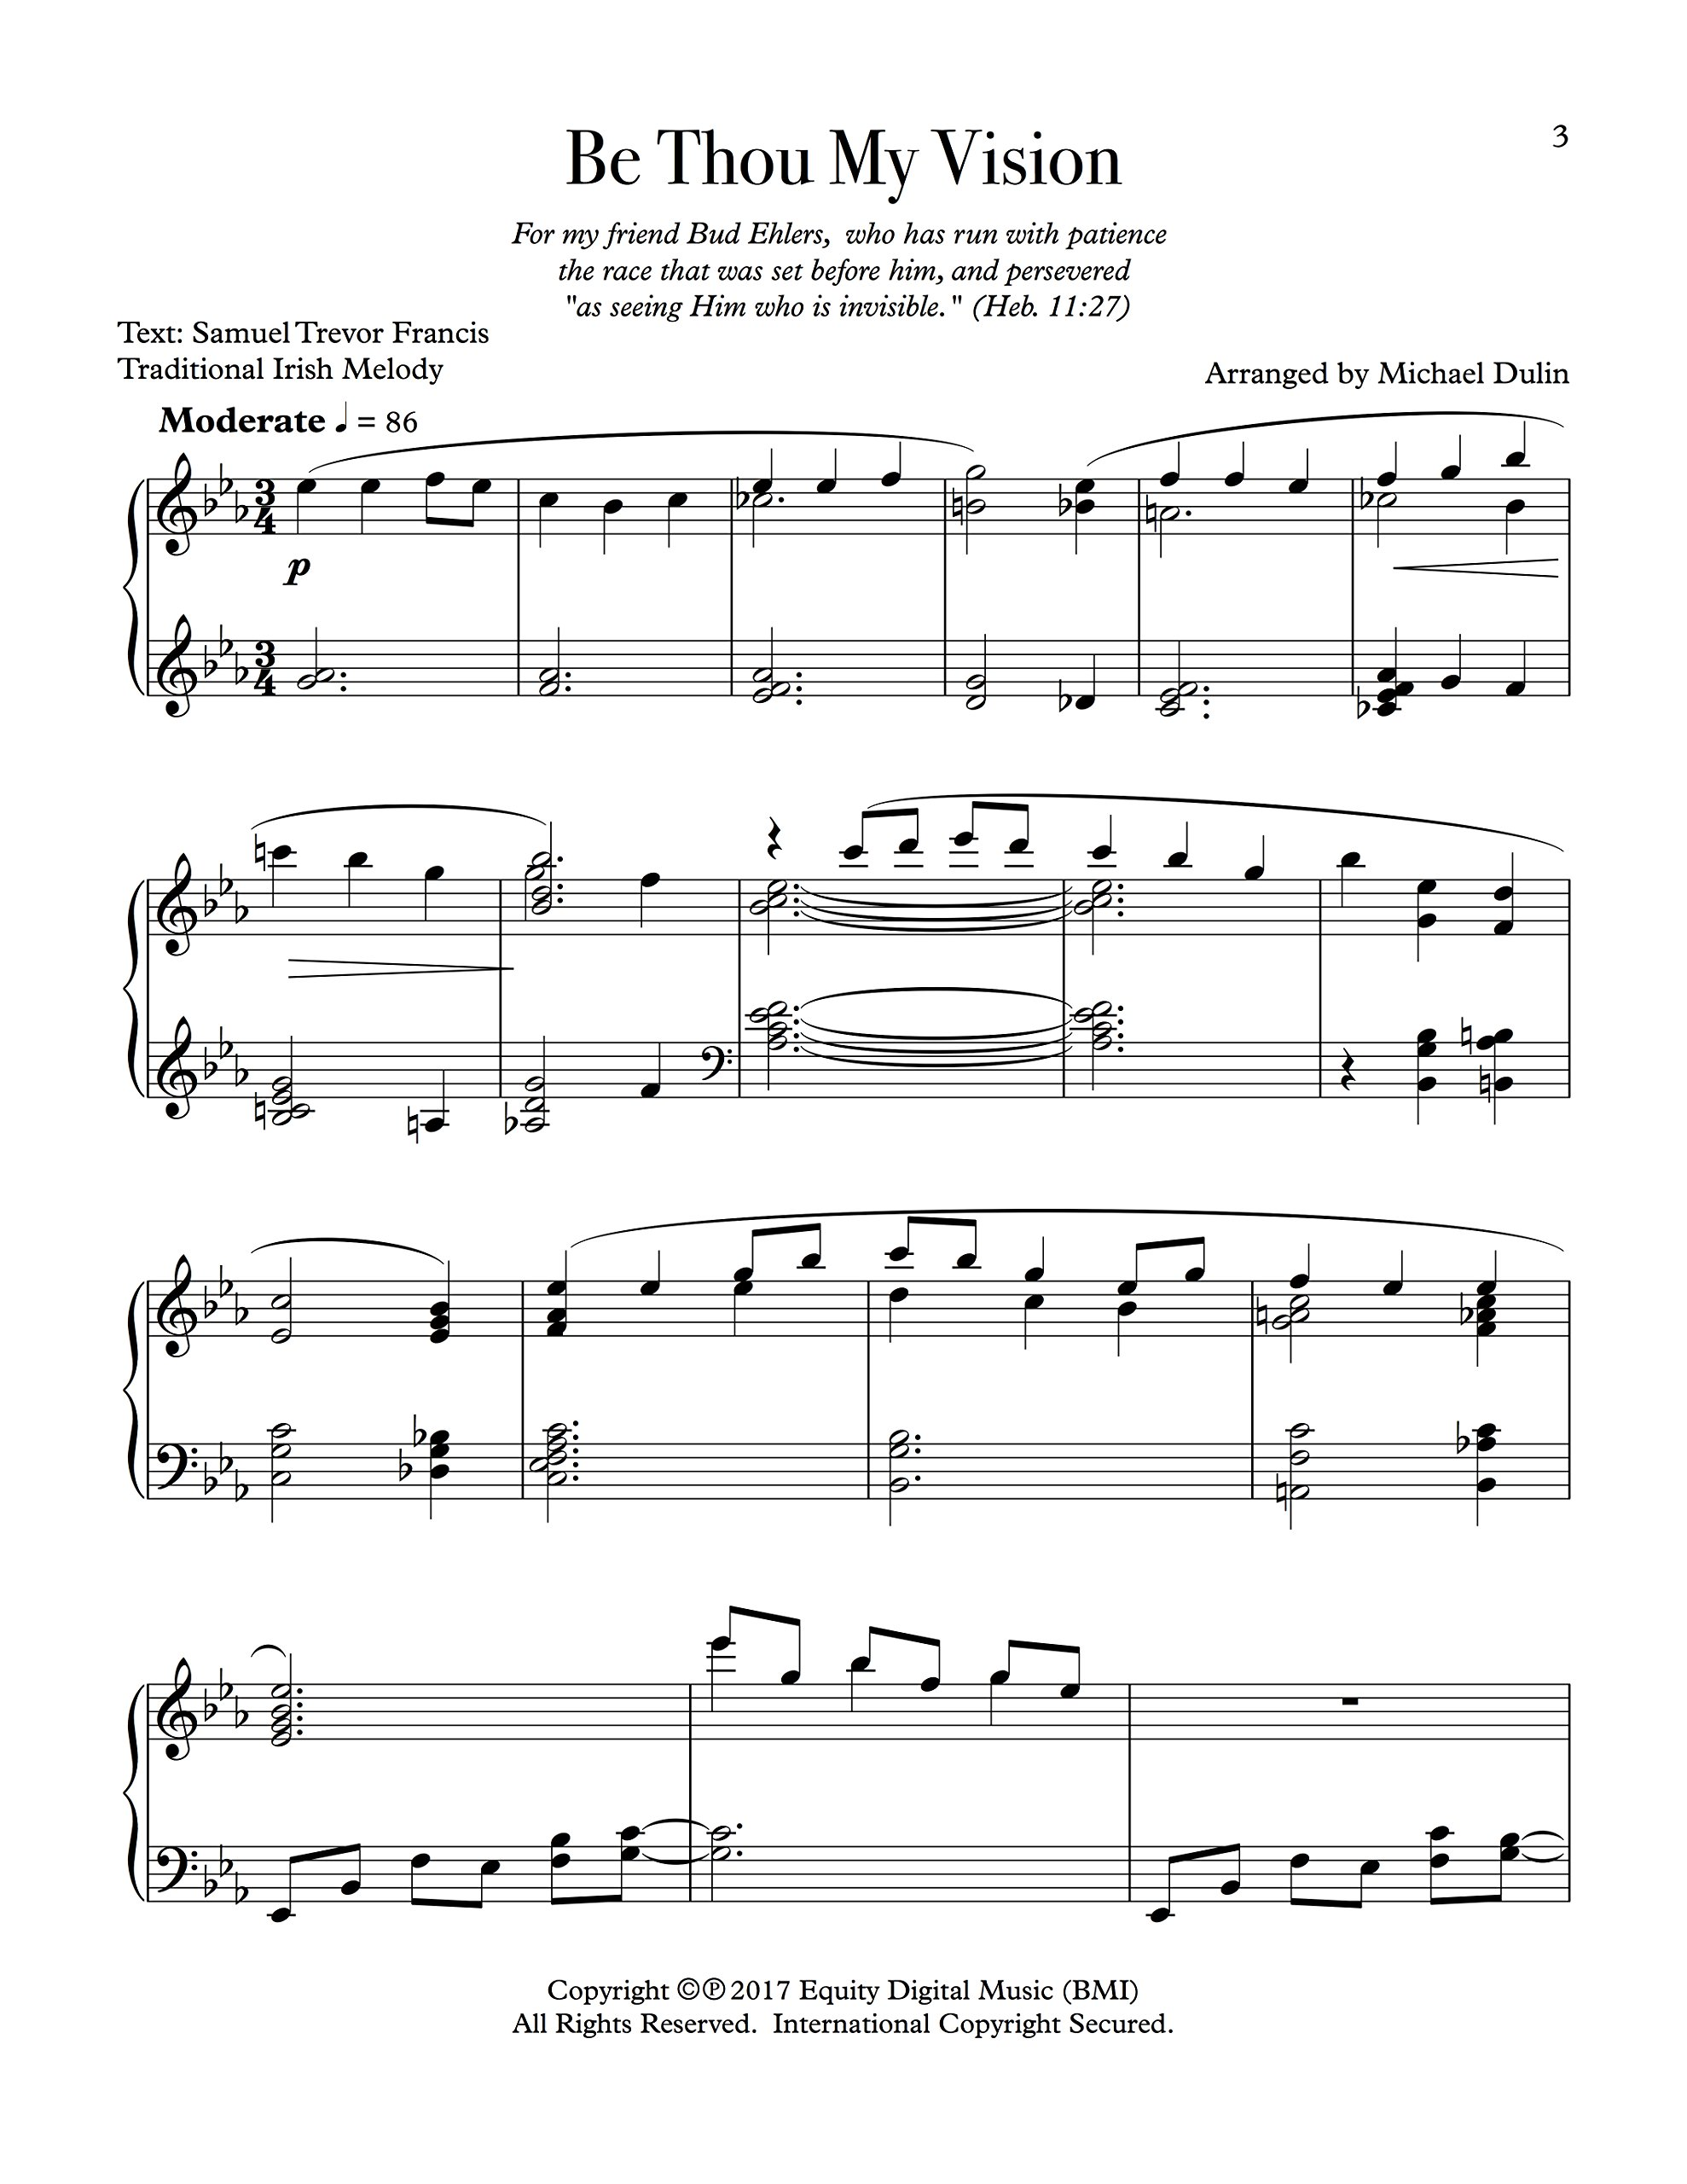 Beautiful Be Thou My Vision Hymn Settings For Solo Piano Play Piano Solo Sheet Music Book Long Performance Life Keyboard & Piano